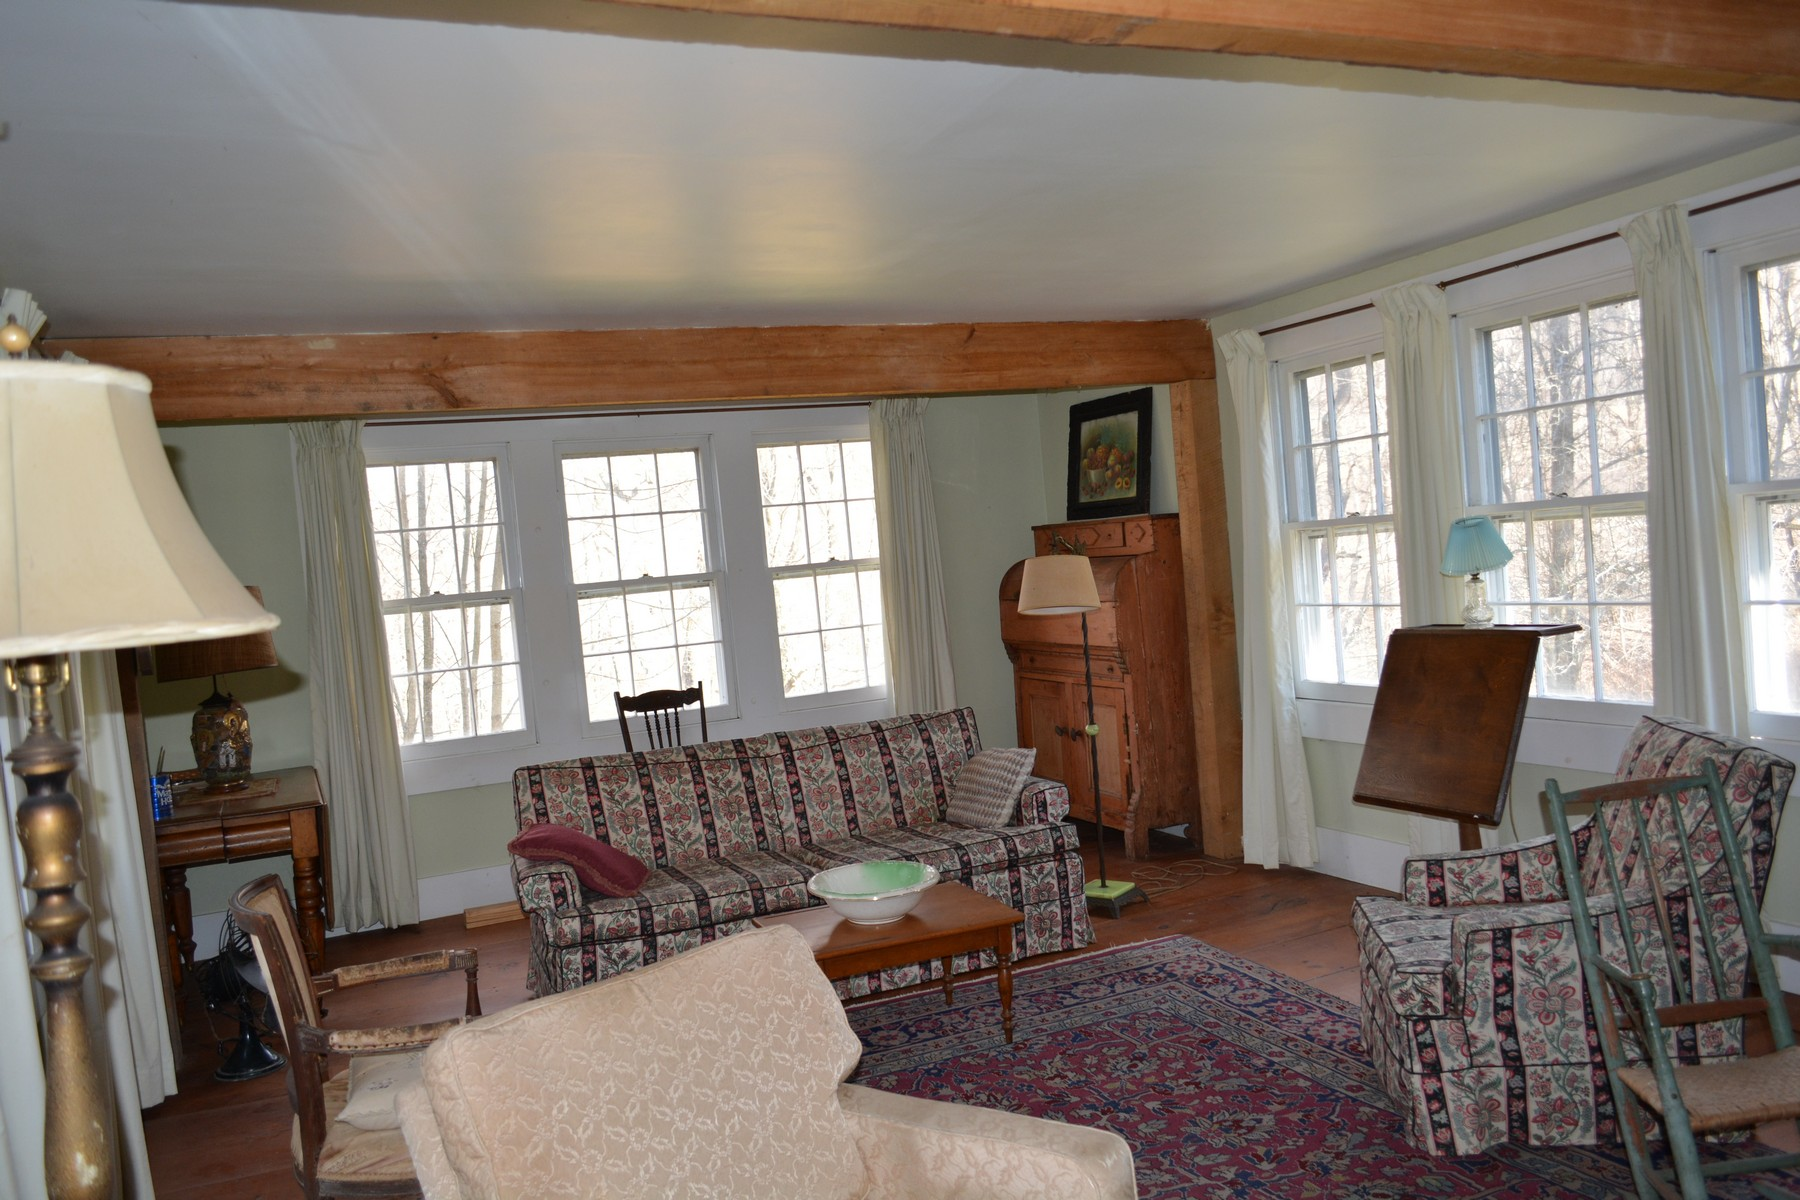 Additional photo for property listing at Classic Farmhouse with Land 6774  Cr23/walton-sidney Rd Sidney Center, New York 13839 États-Unis